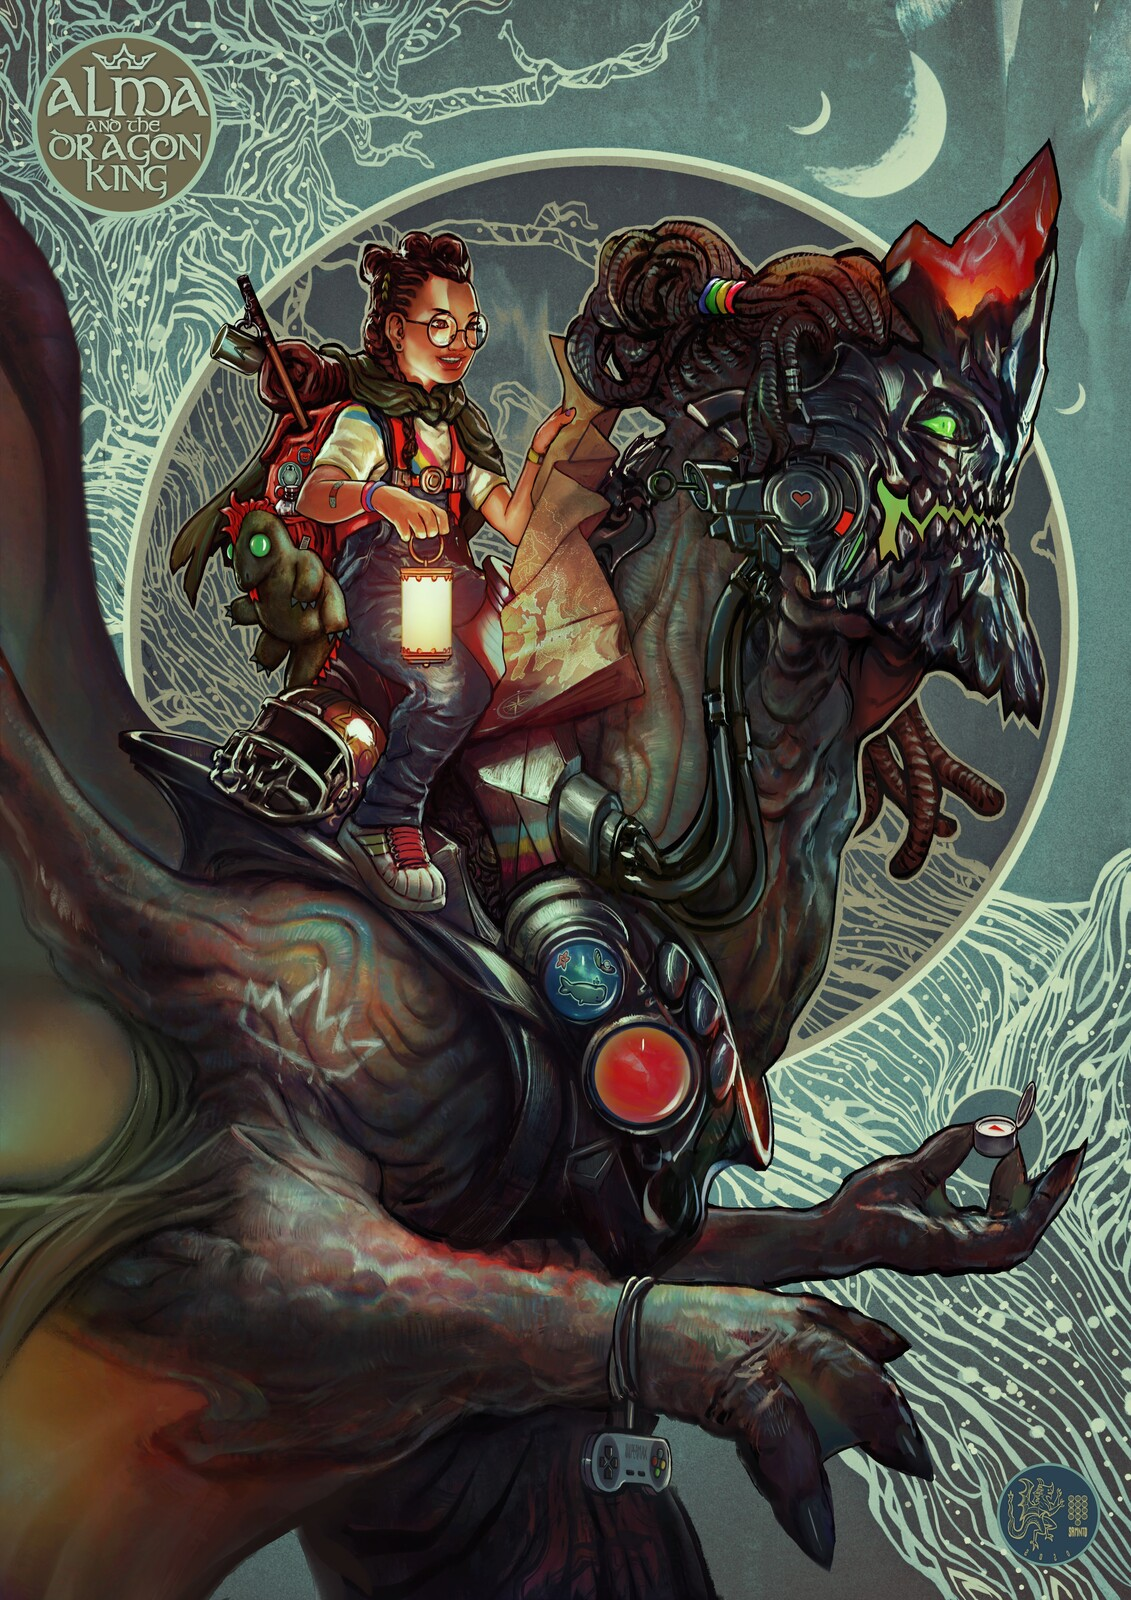 Alma and the Dragon King (Retro MaxPack promo piece)